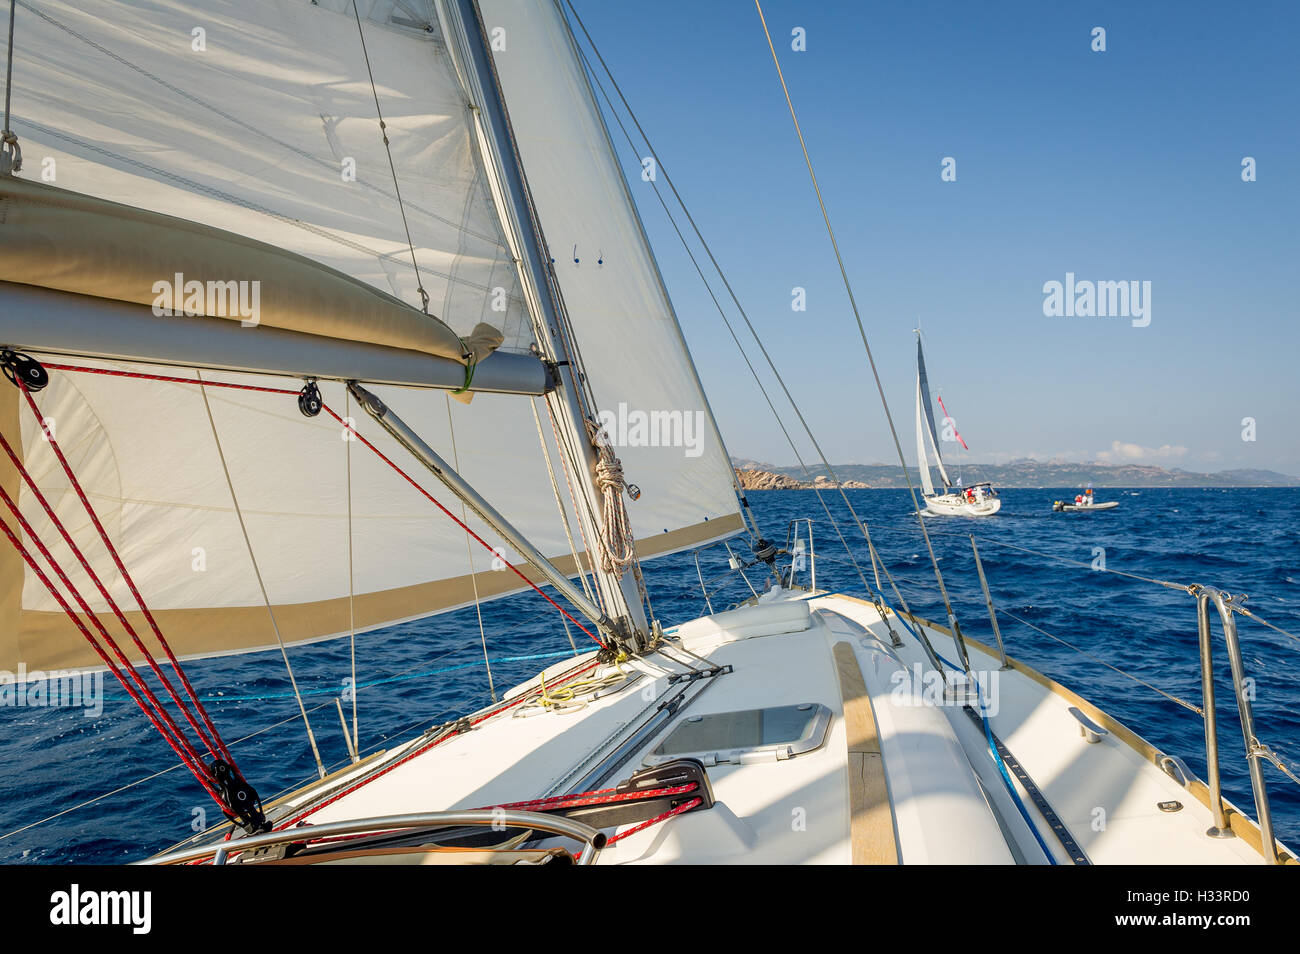 Sailing boat going fast on she's sails, view from the cockpit to bow. - Stock Image